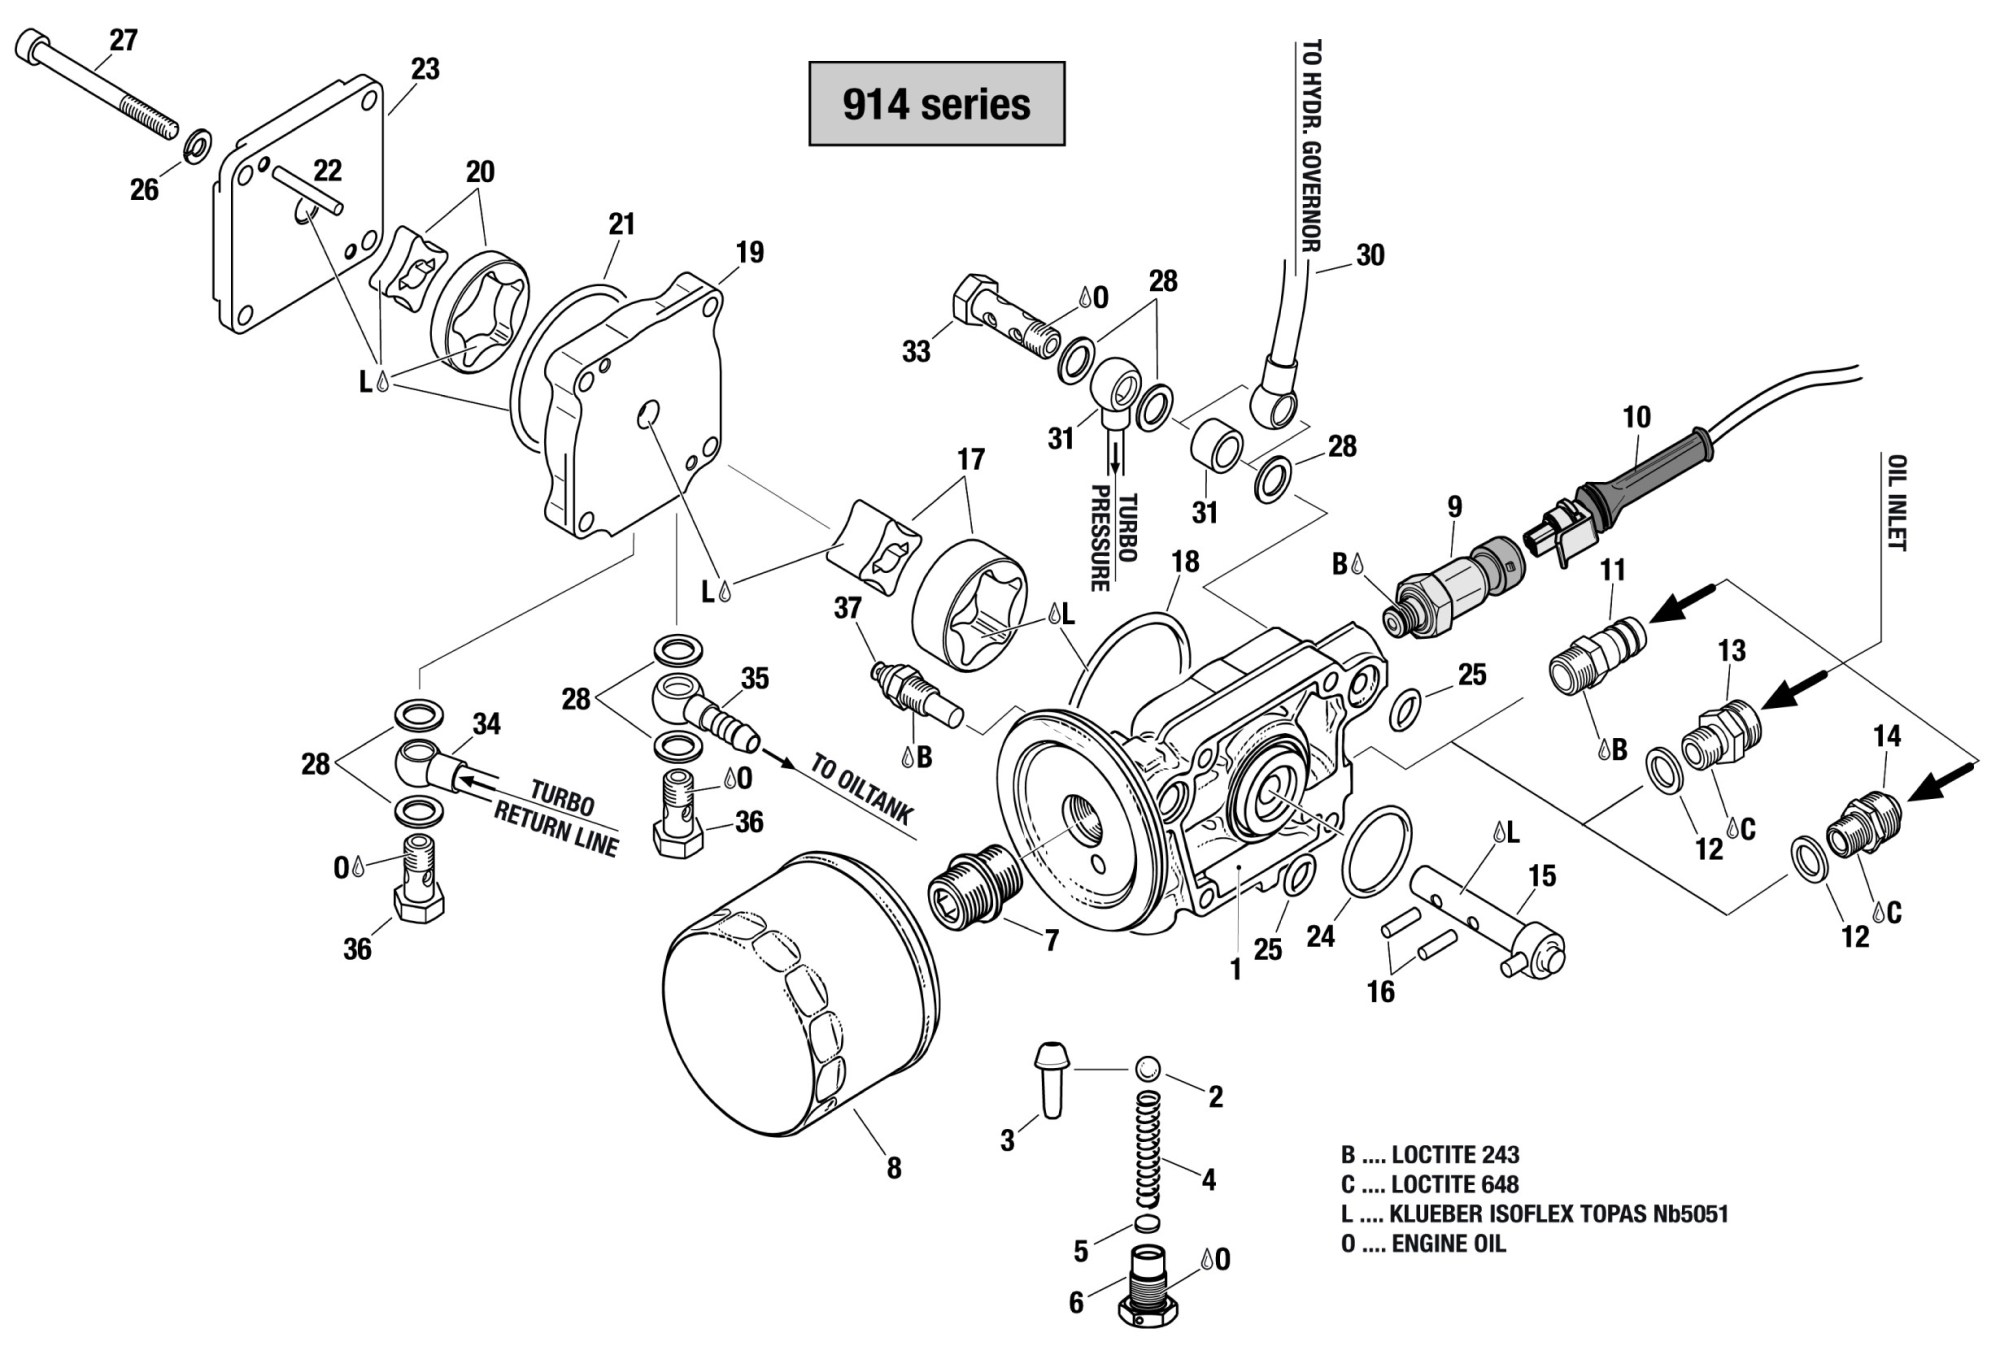 hight resolution of 914 oil pump assembly